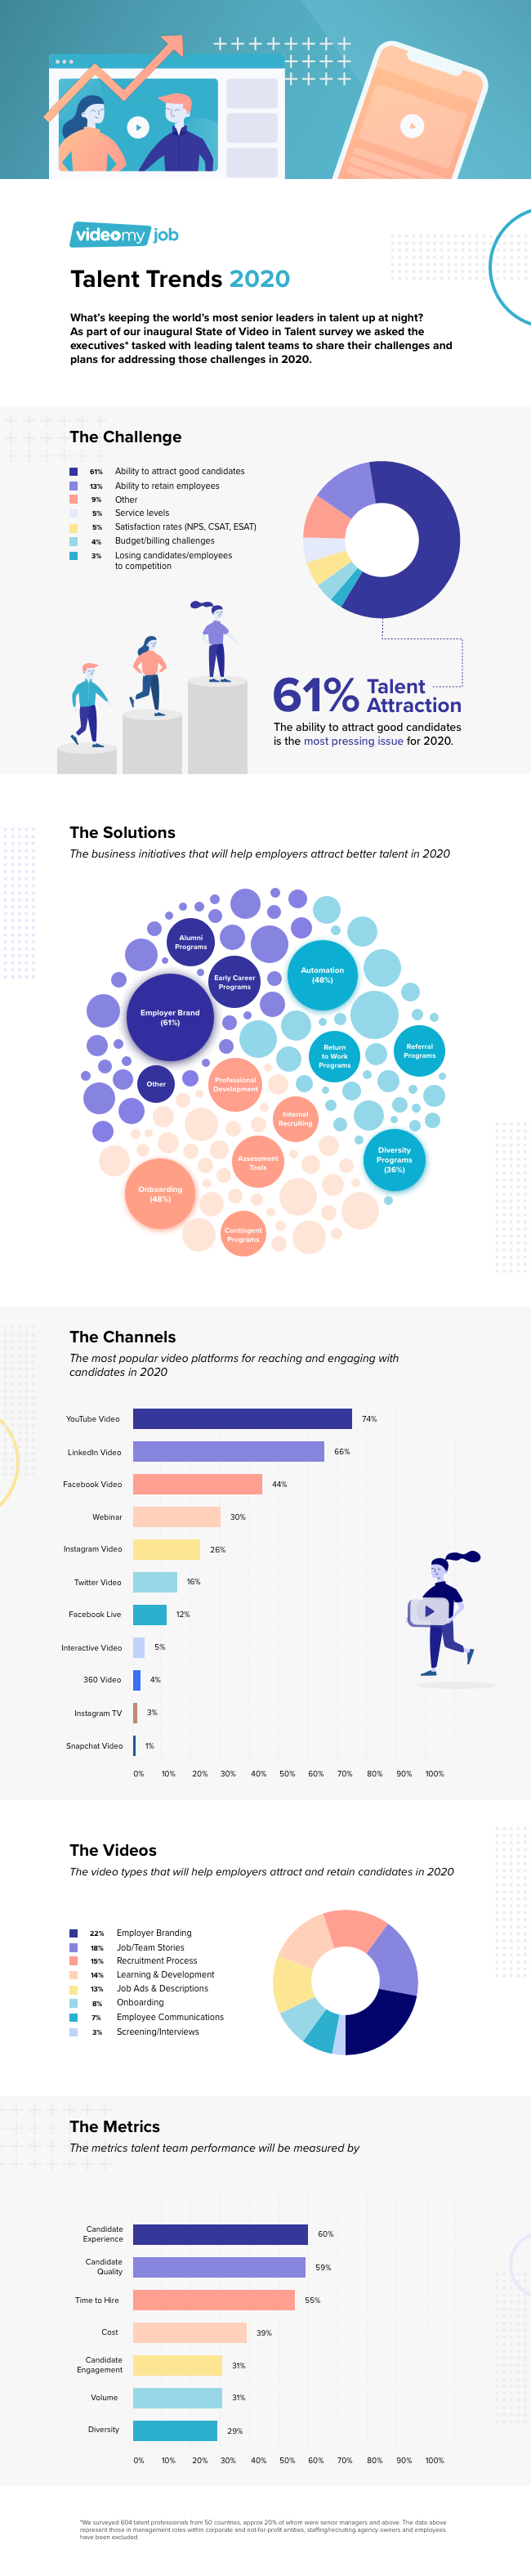 VideoMyJob Talent Trends [Infographic]